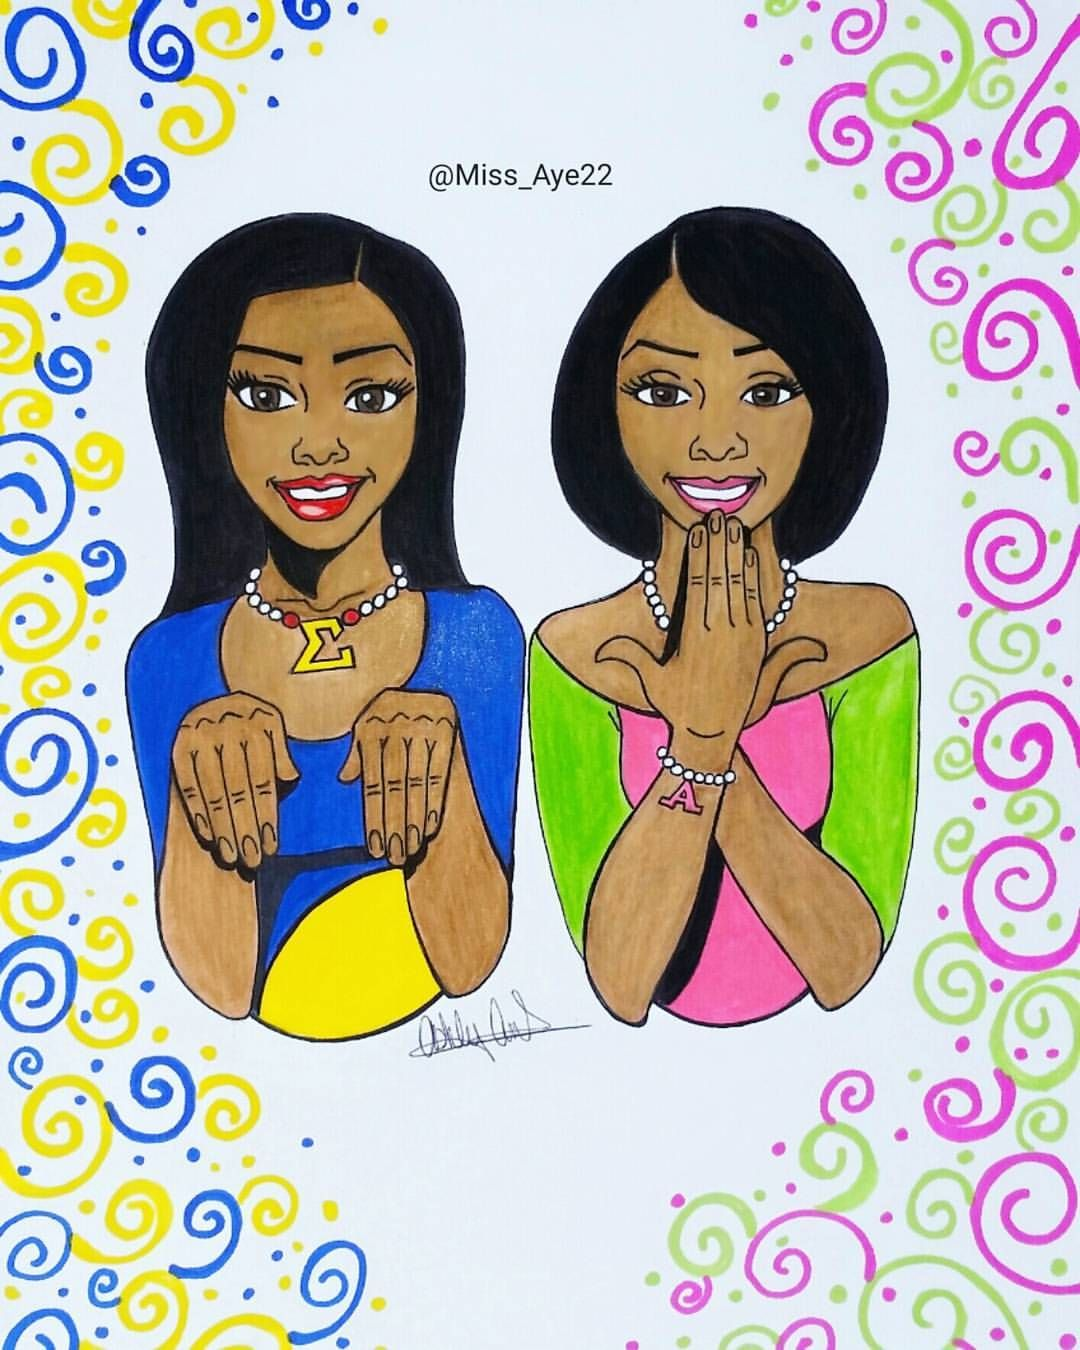 Sgrho and kappa the divine 9 pinterest kappa sigma gamma 302 likes 55 comments ashley andrews missaye22 on instagram biocorpaavc